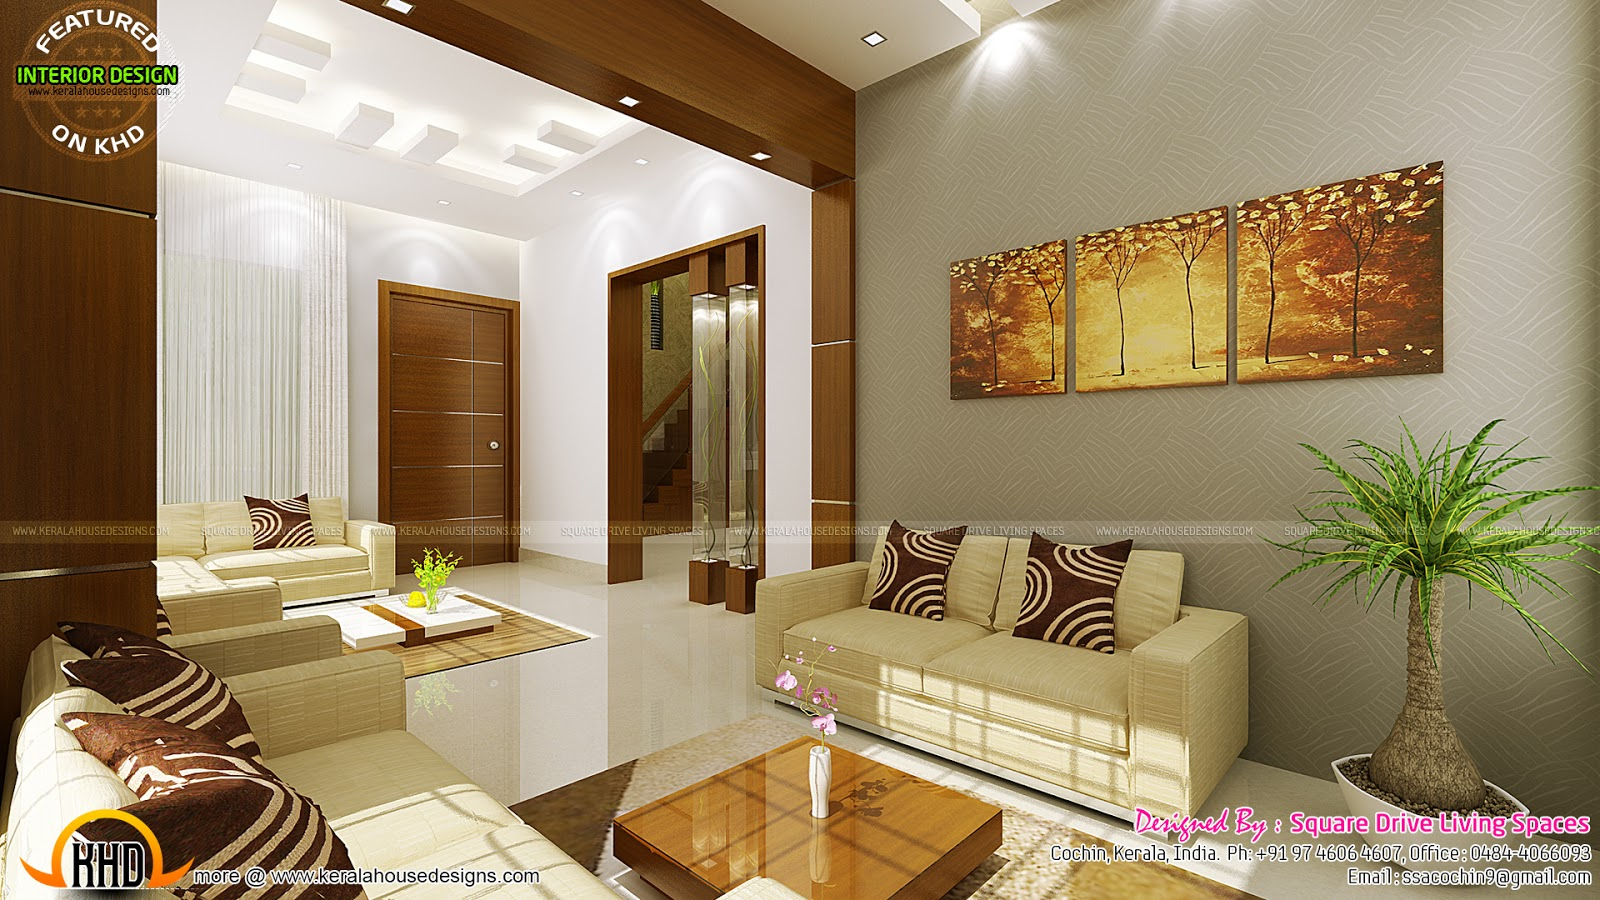 Contemporary kitchen dining and living room kerala home for House room design ideas